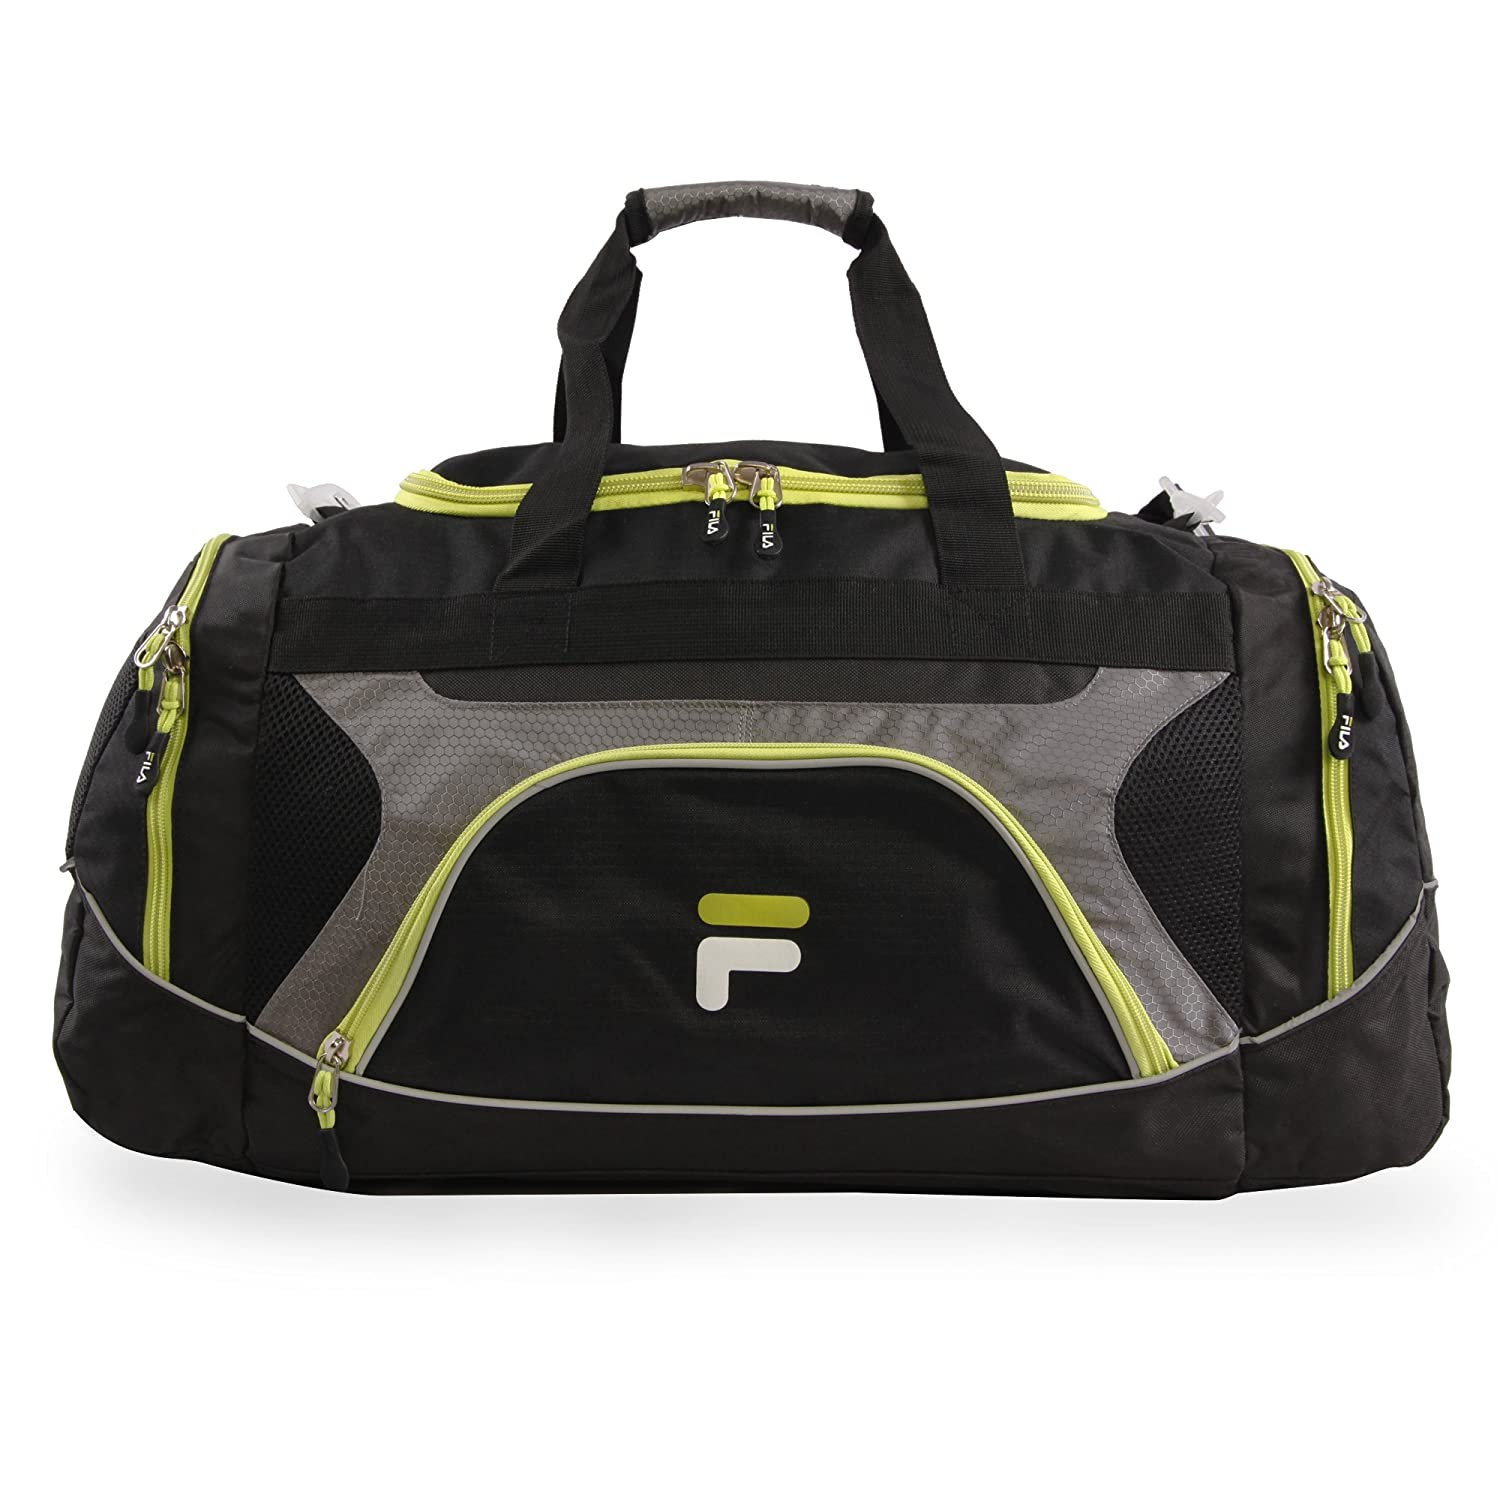 Fila Donlon Small Travel Gym Sport Duffel Bag c4bdd2f83d5fe